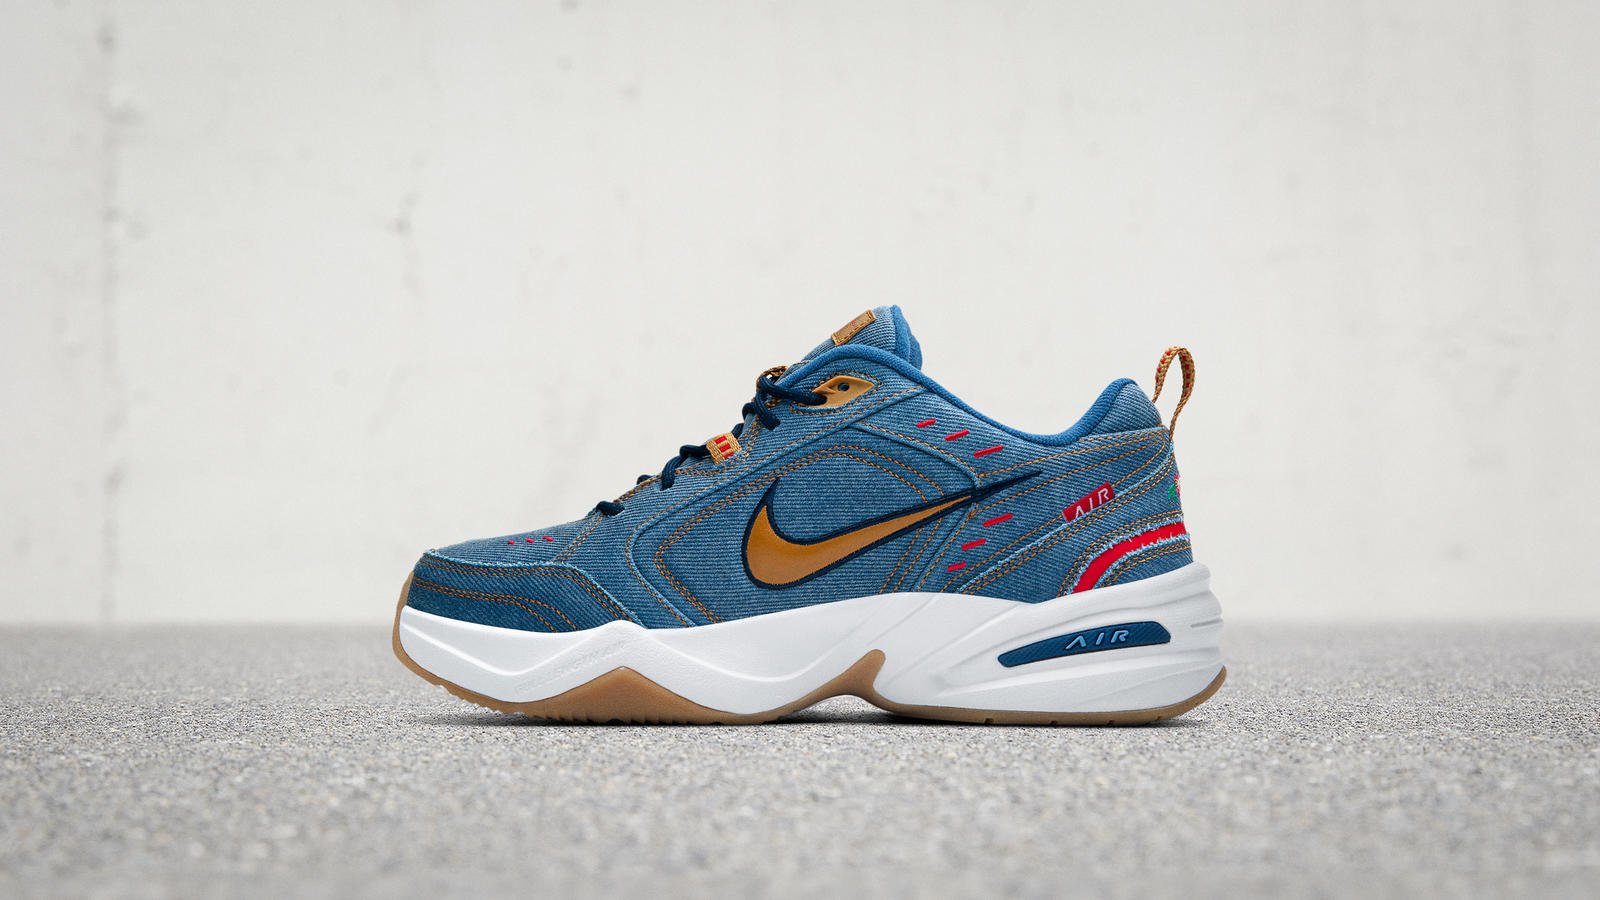 Nike Air Monarch 4 Denim Official Images and Release Date 0